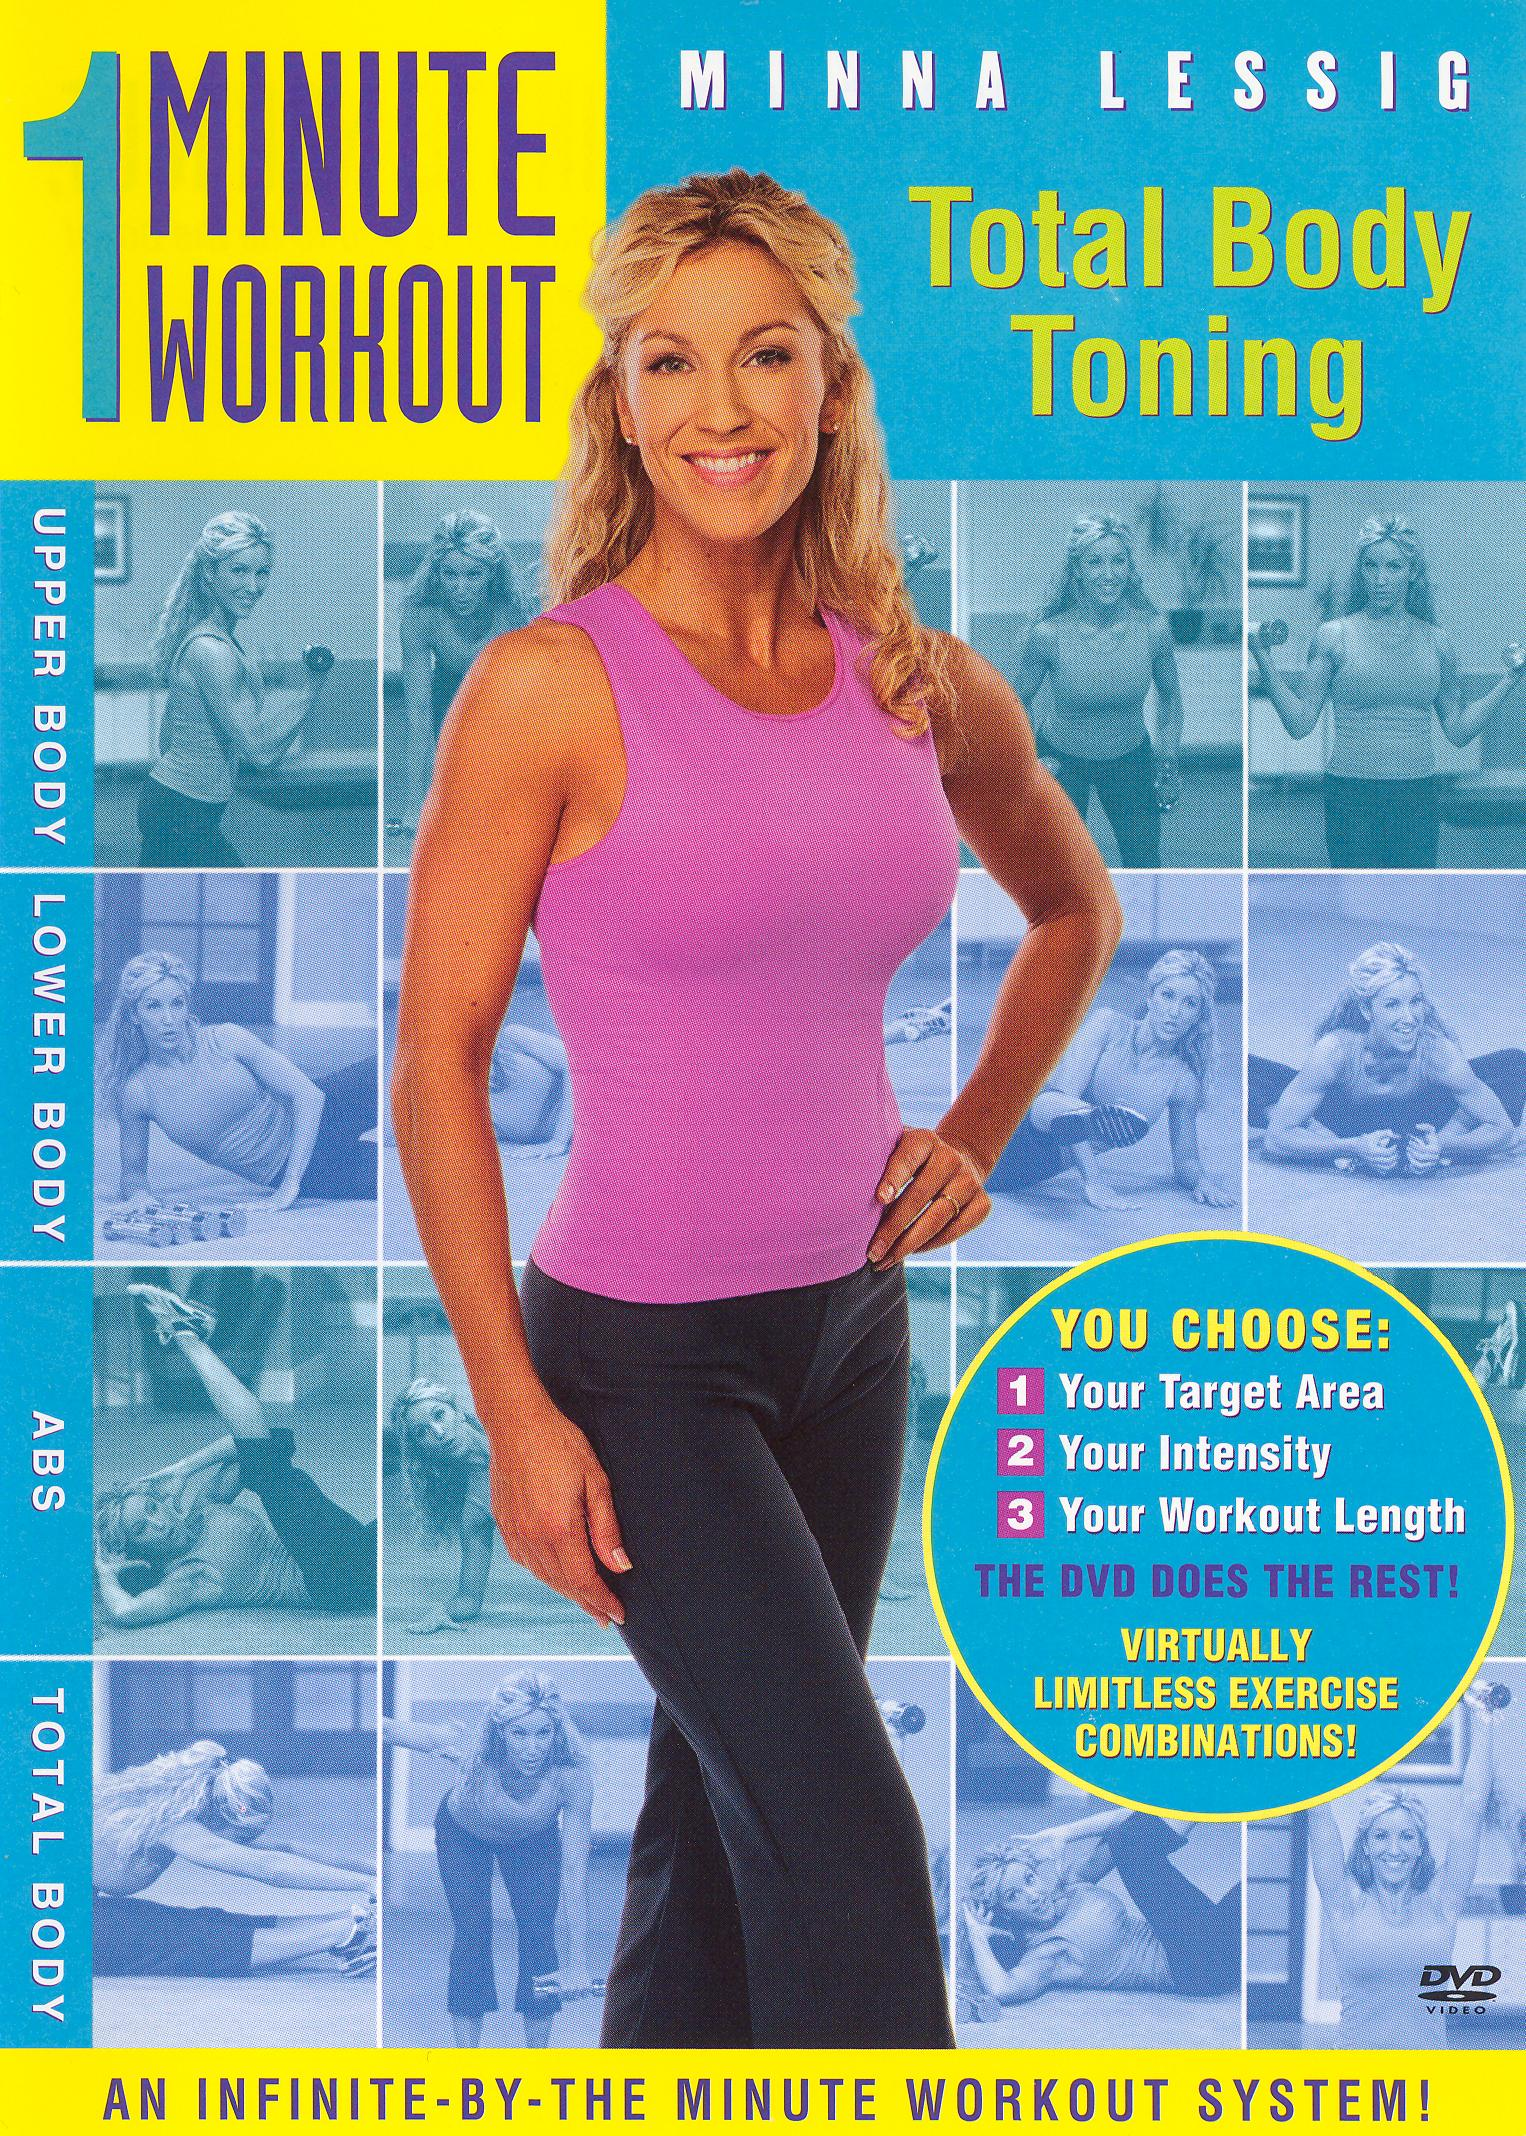 Minna Lessig: Total Body Toning - 1 Minute Workout